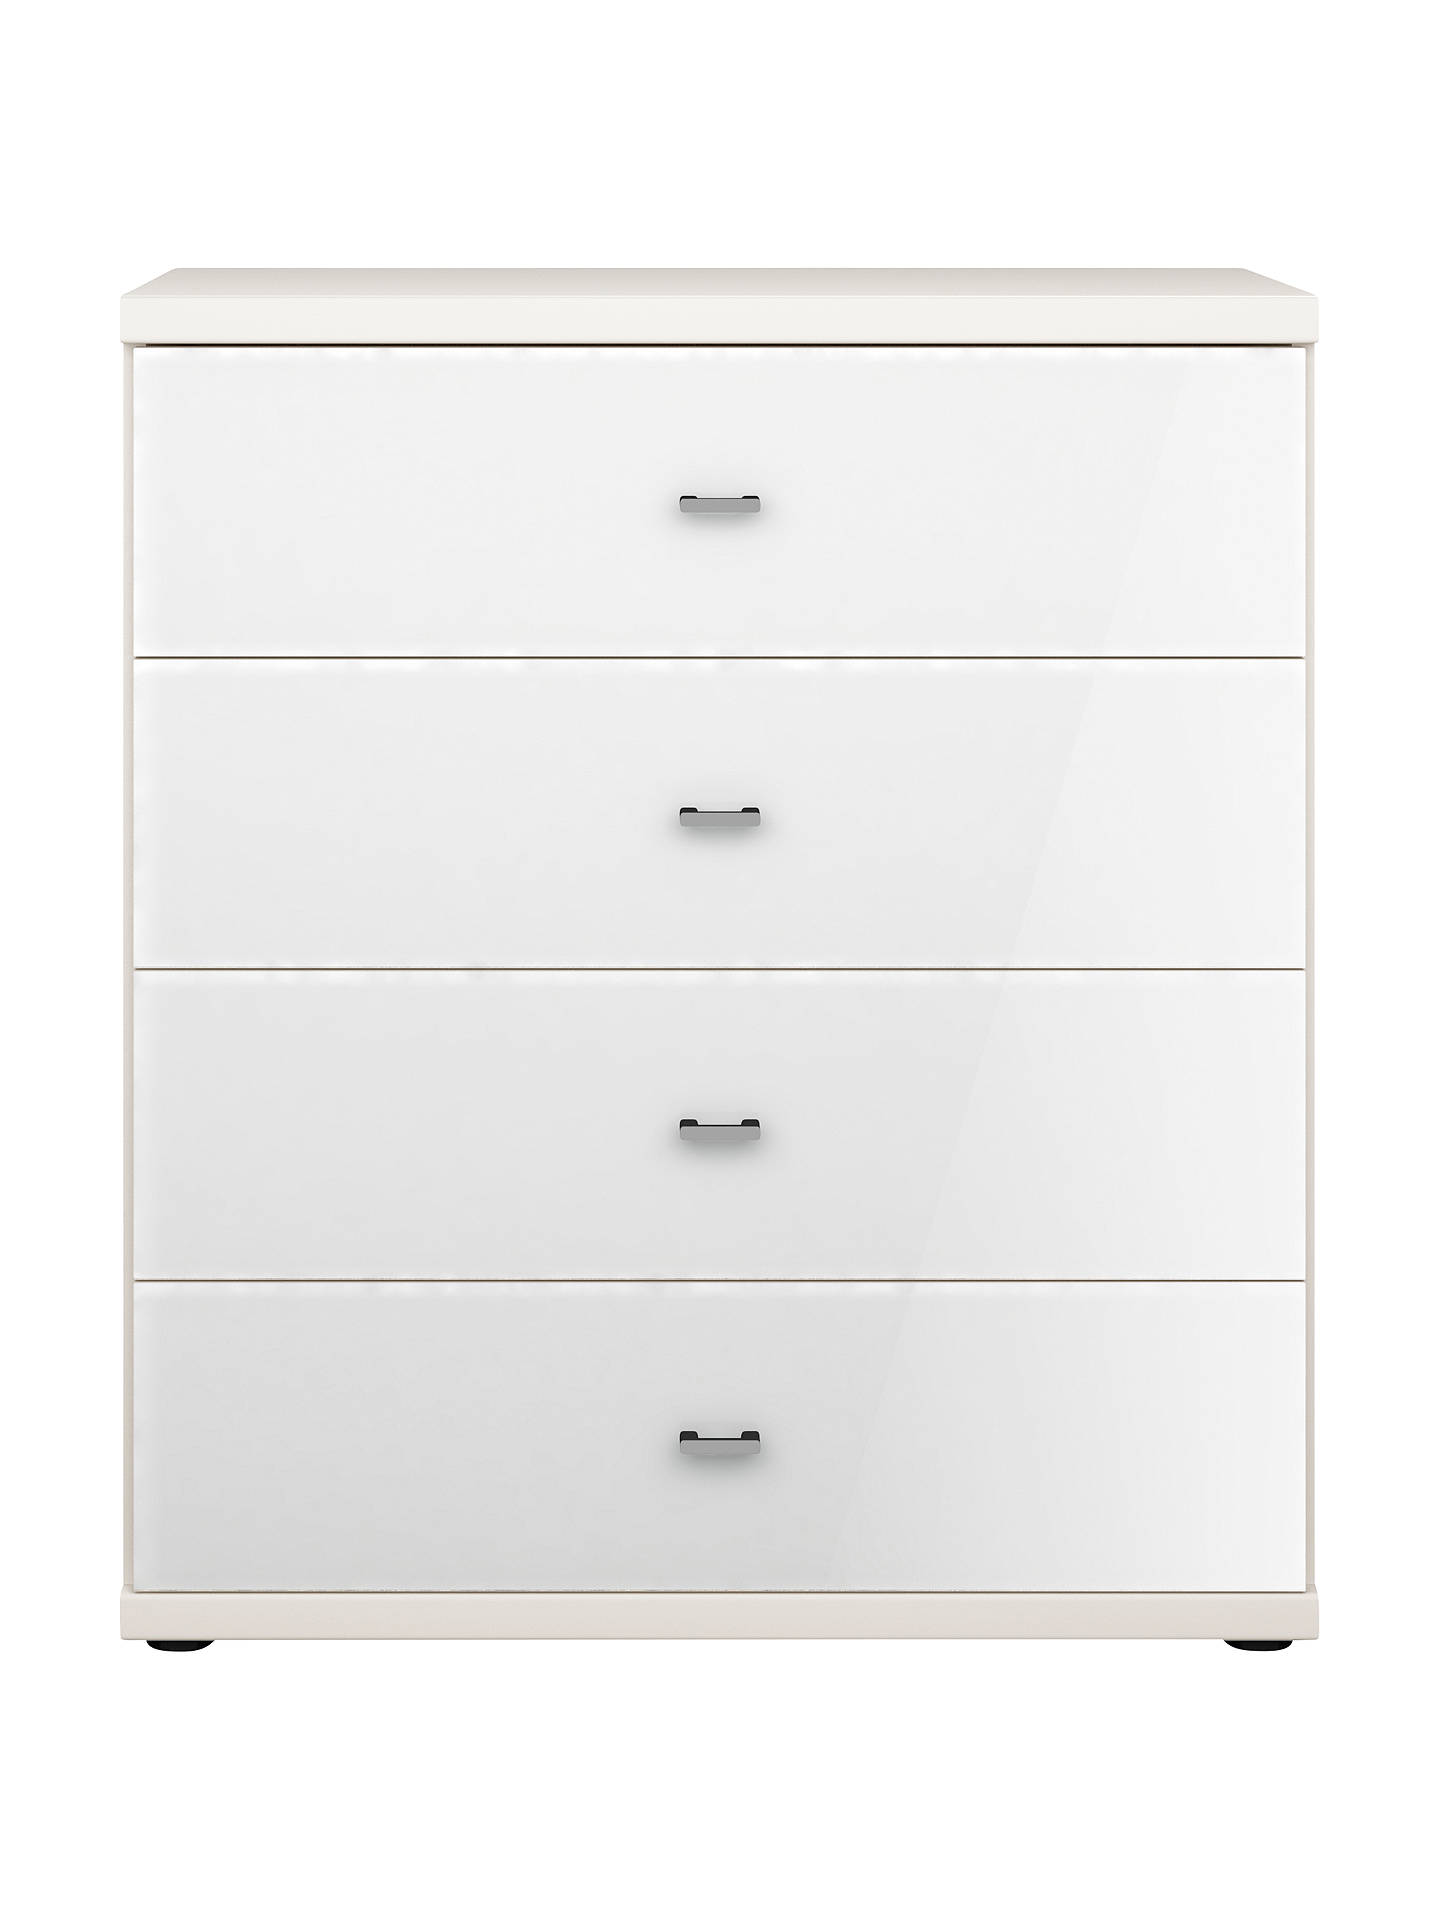 BuyJohn Lewis & Partners Elstra 4 Drawer Glass Front Chest, White Glass/Alpine White Online at johnlewis.com